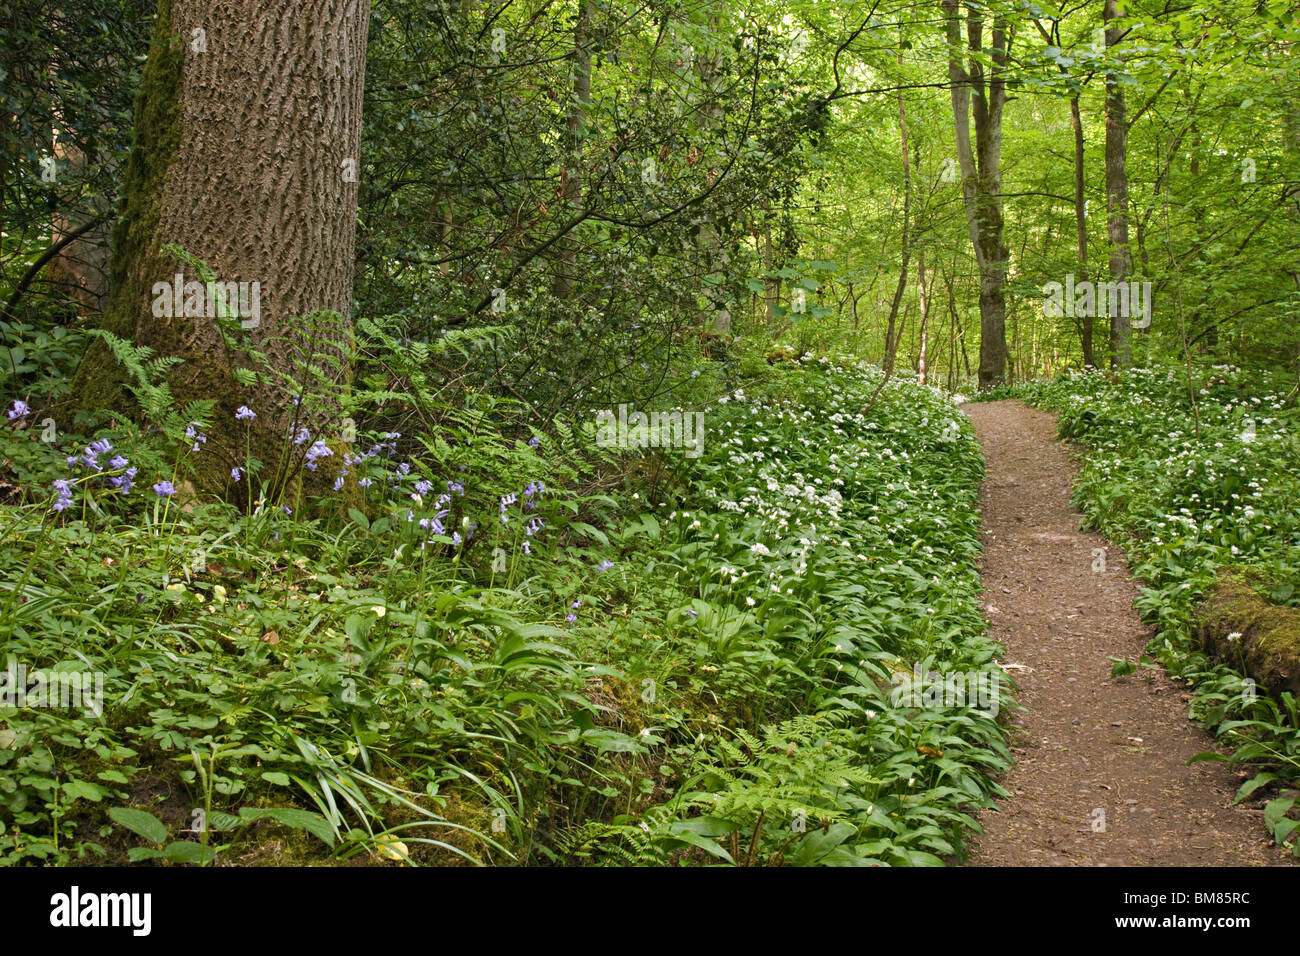 Footpath through ancient woodland at Richmond, North Yorkshire. Most of the flowers are Ramsons, also known as Wild - Stock Image